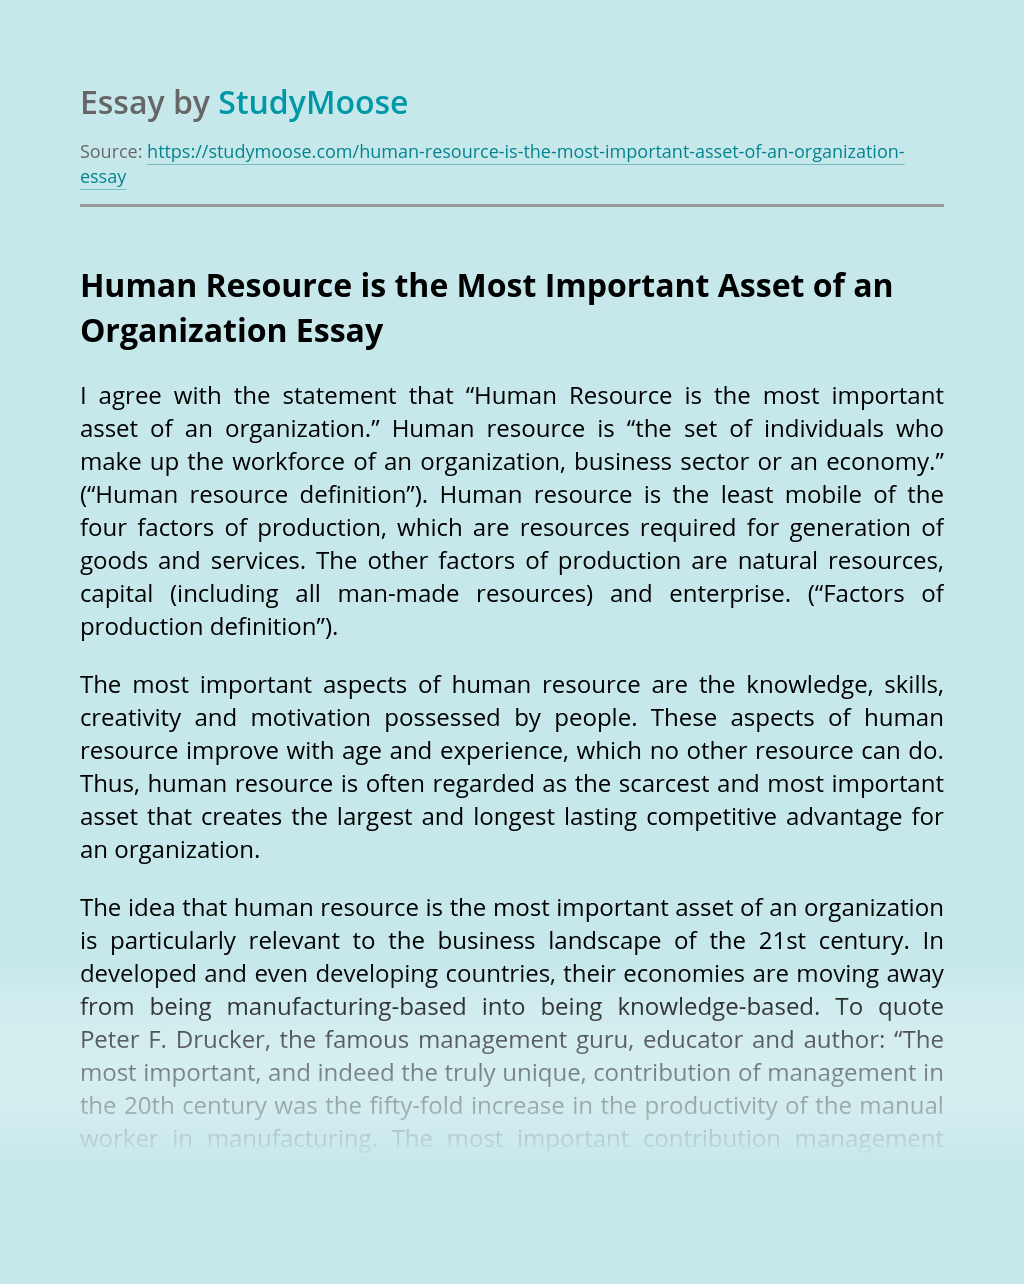 Human Resource is the Most Important Asset of an Organization